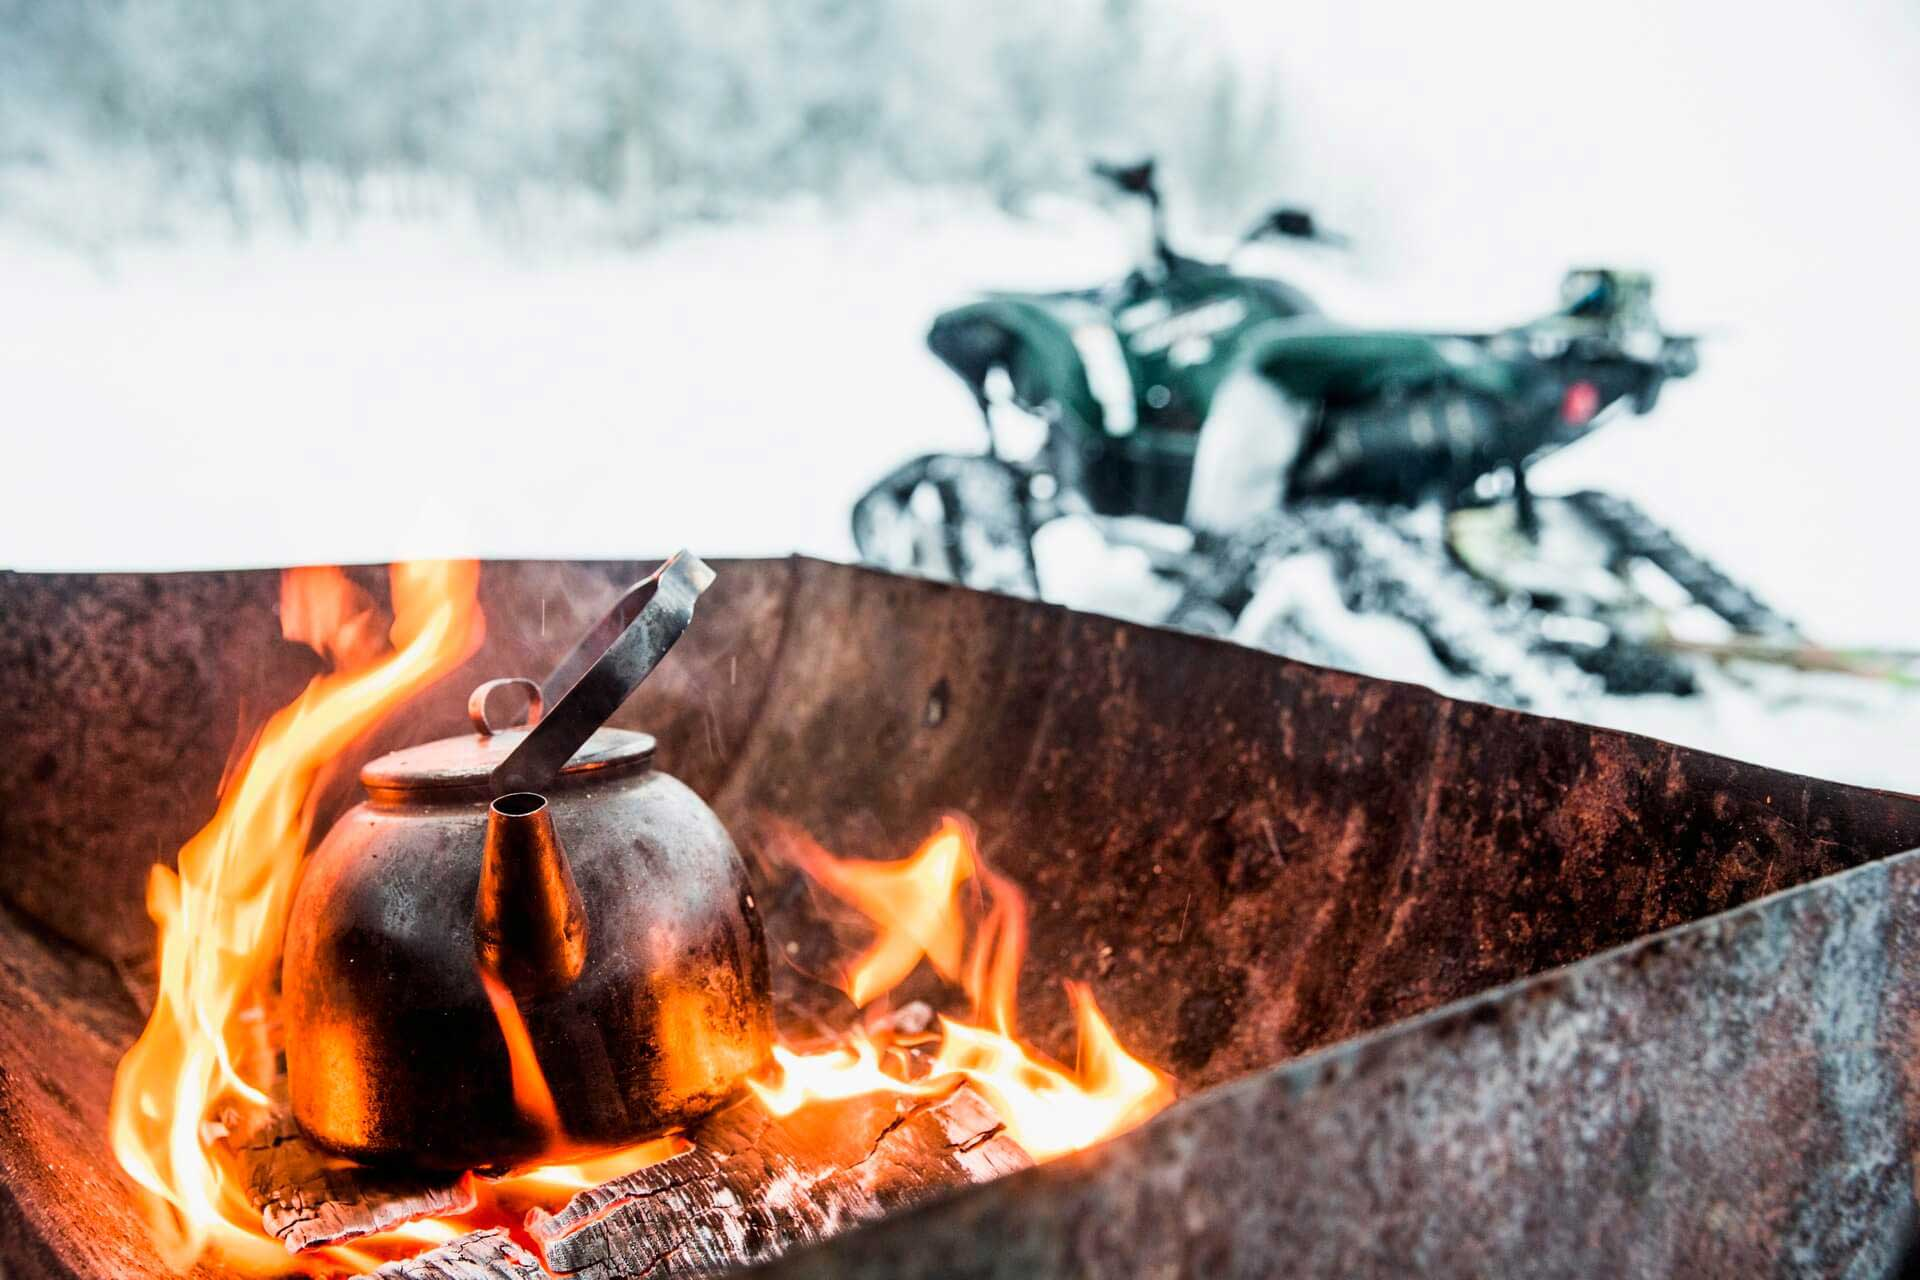 Coffee on the open fire | Photo: Jonas Kullman